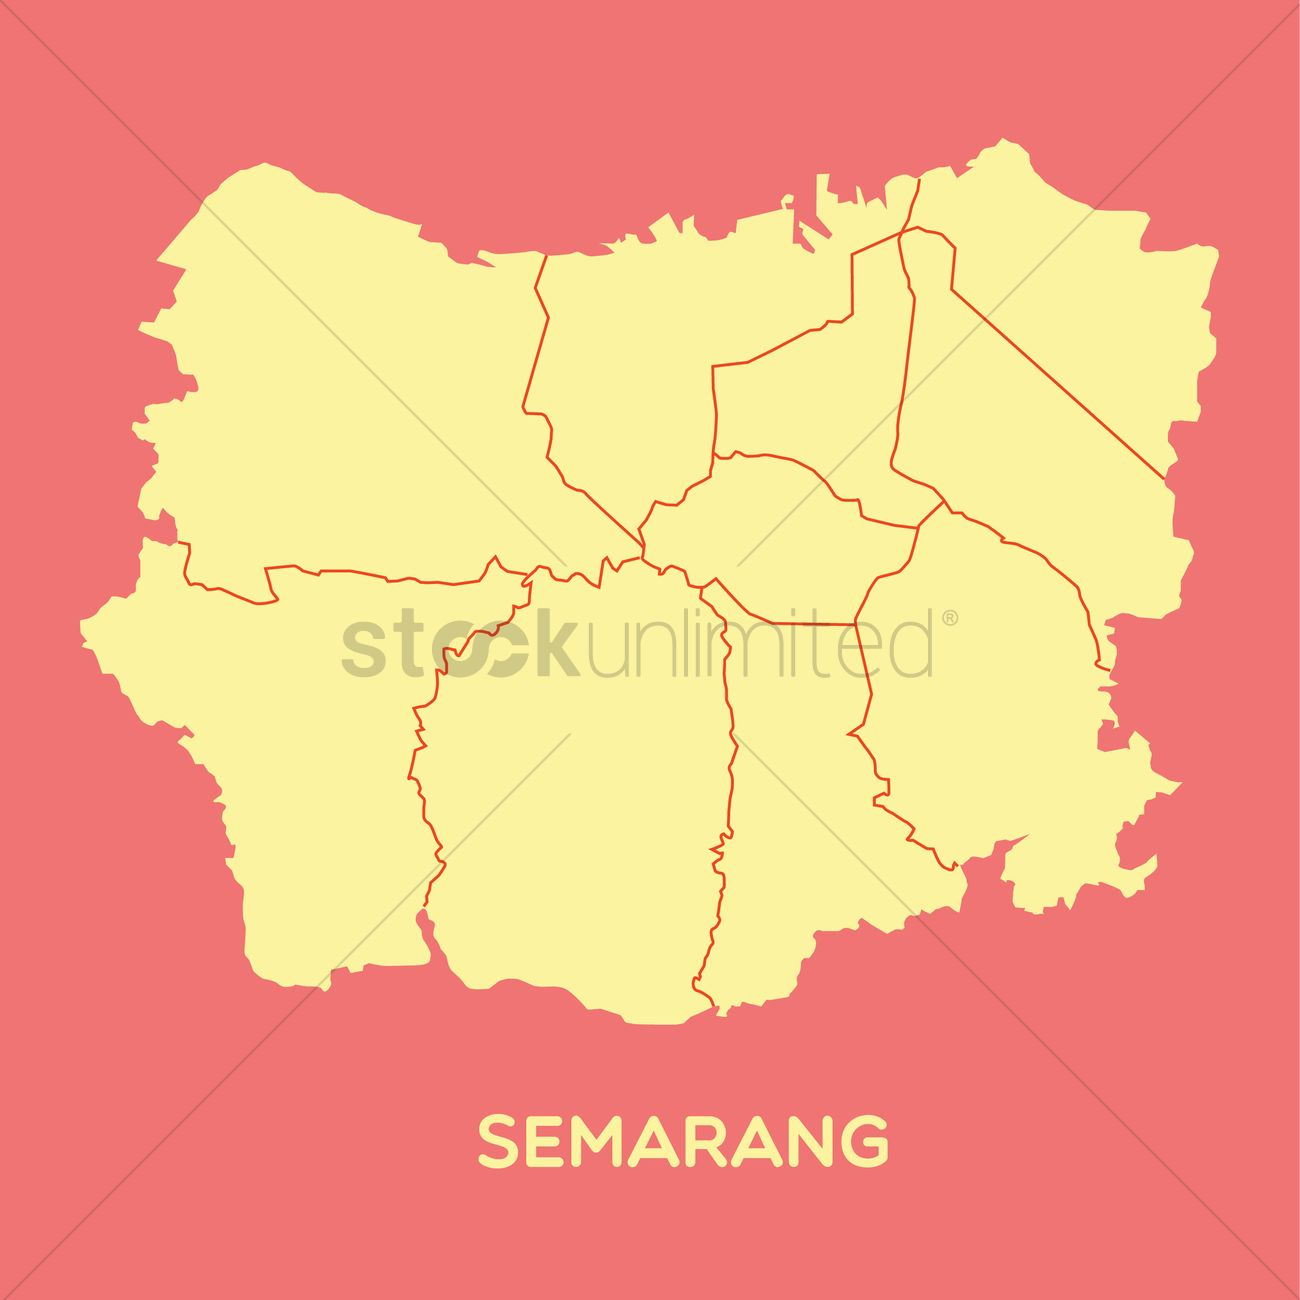 Map of semarang Vector Image 1479769 StockUnlimited